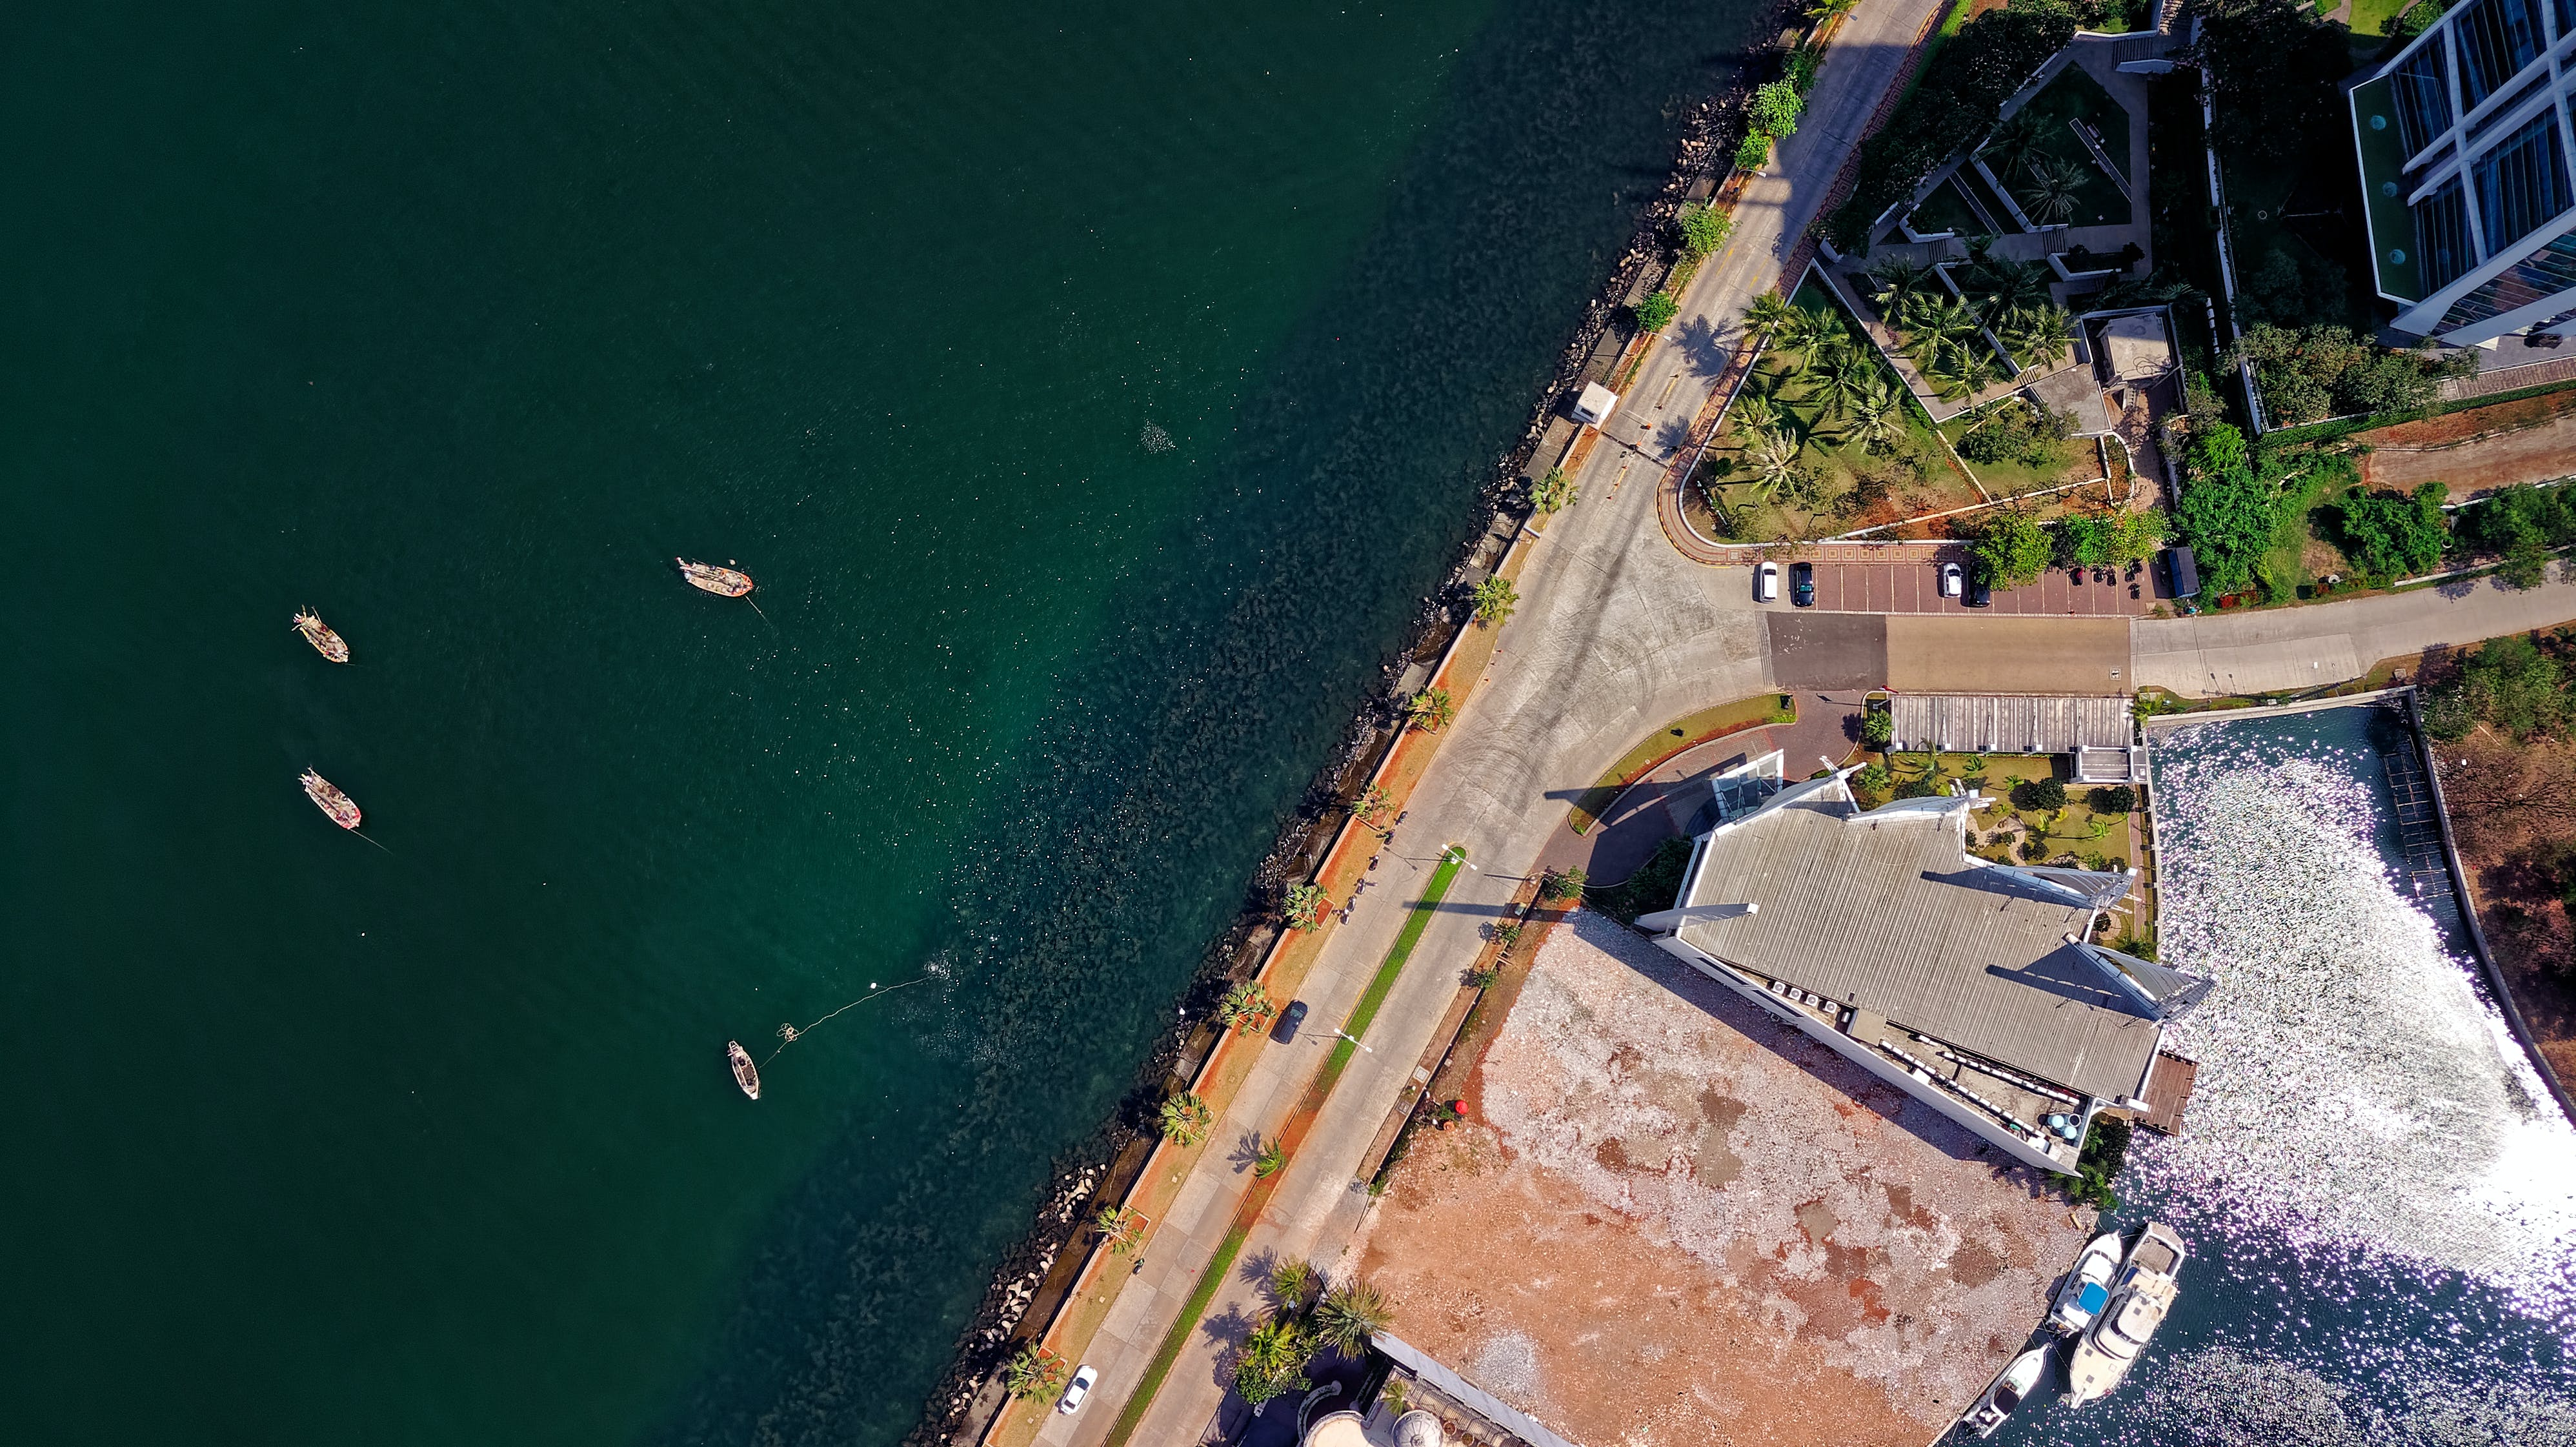 Aerial Photography of Building Near Body of Water